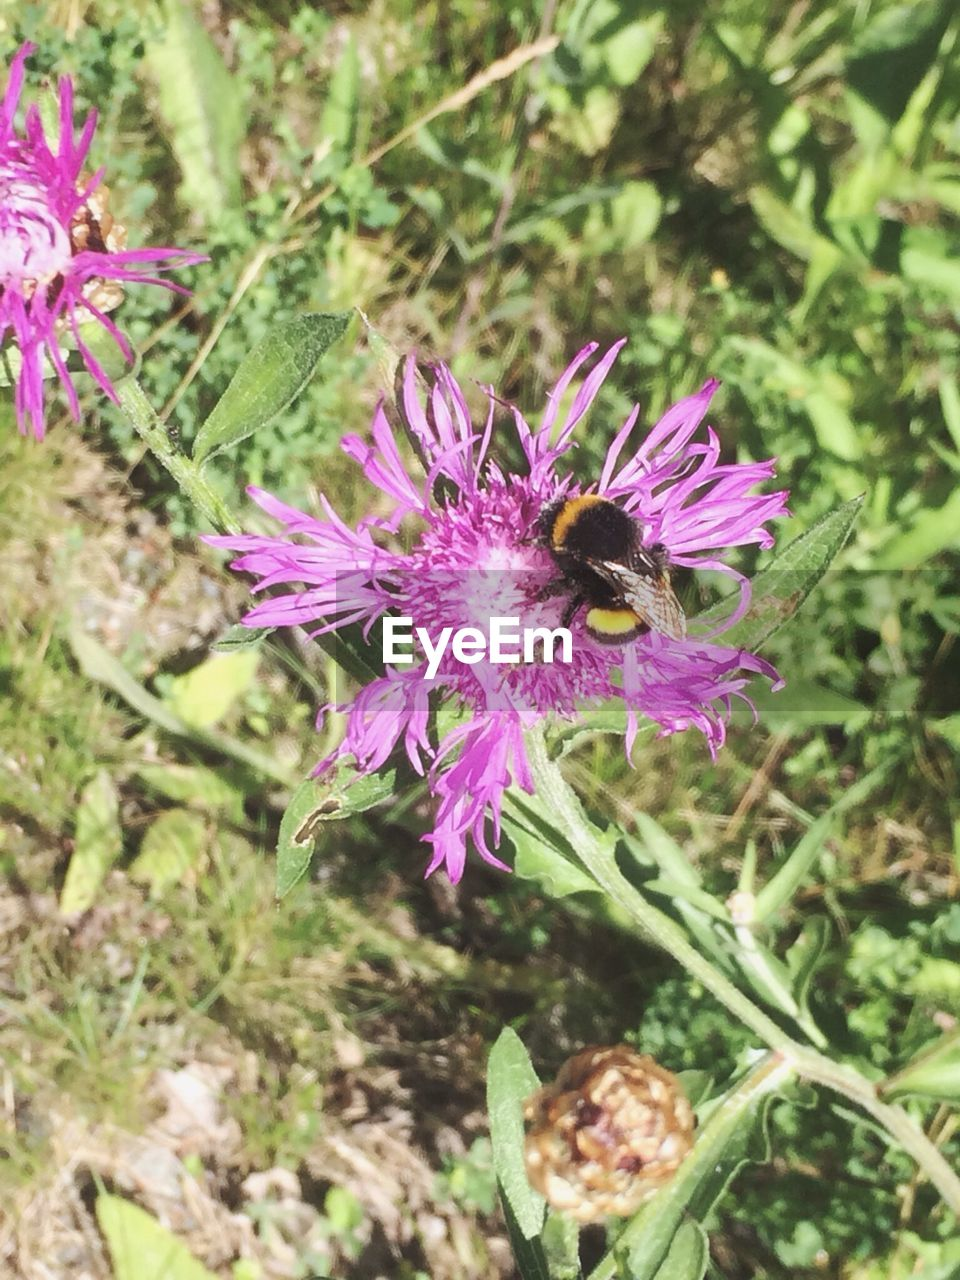 flower, flowering plant, plant, freshness, beauty in nature, growth, invertebrate, fragility, animal, insect, animals in the wild, vulnerability, animal themes, bee, petal, animal wildlife, flower head, one animal, close-up, nature, purple, pollination, no people, pink color, outdoors, pollen, bumblebee